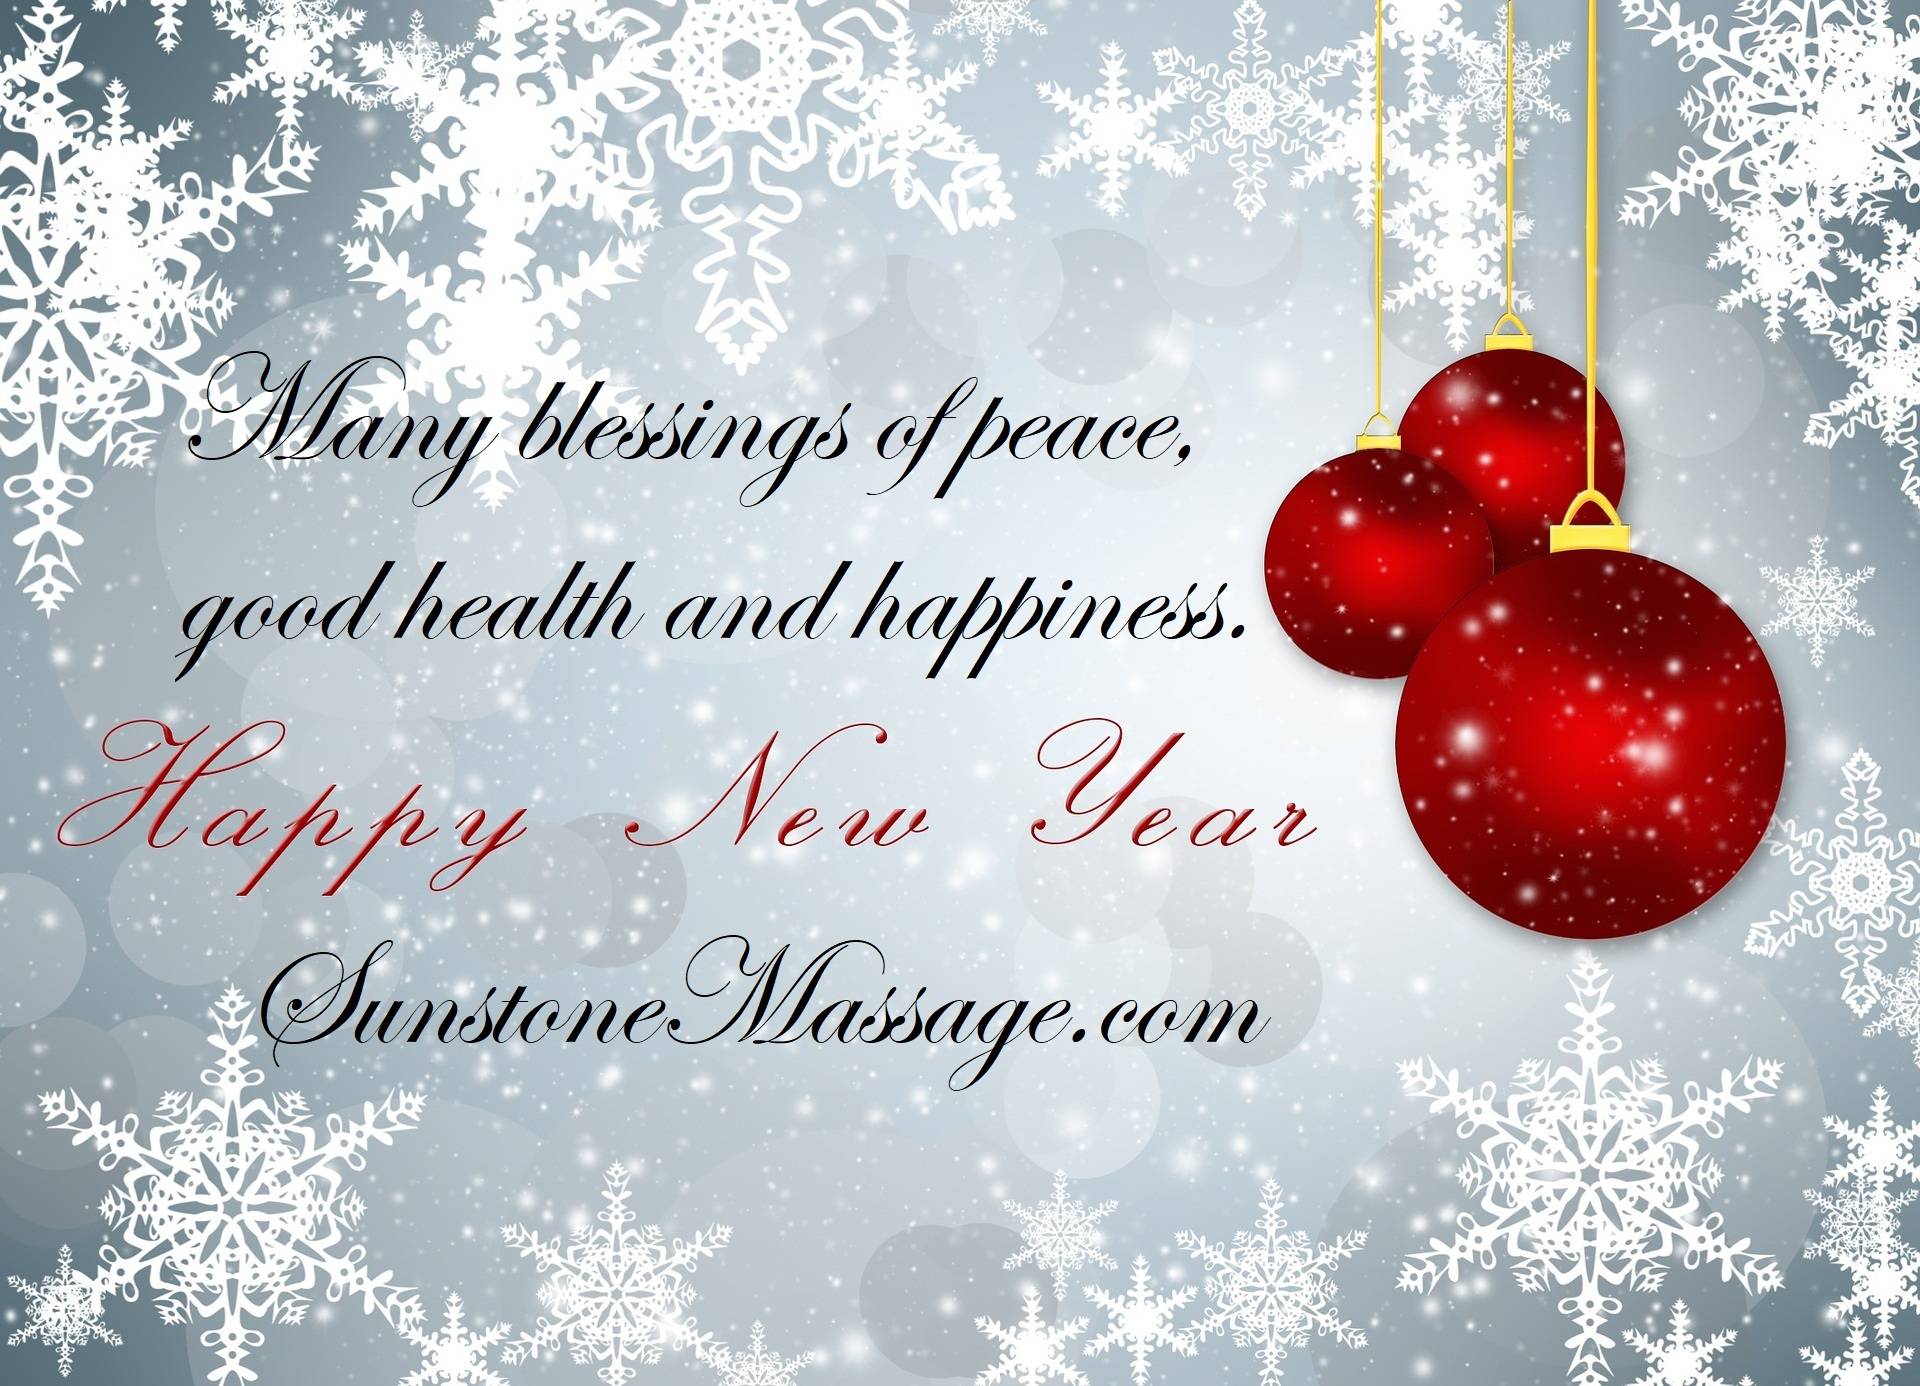 Many Blessings Of Peace, Good Health And Happiness For The New Year